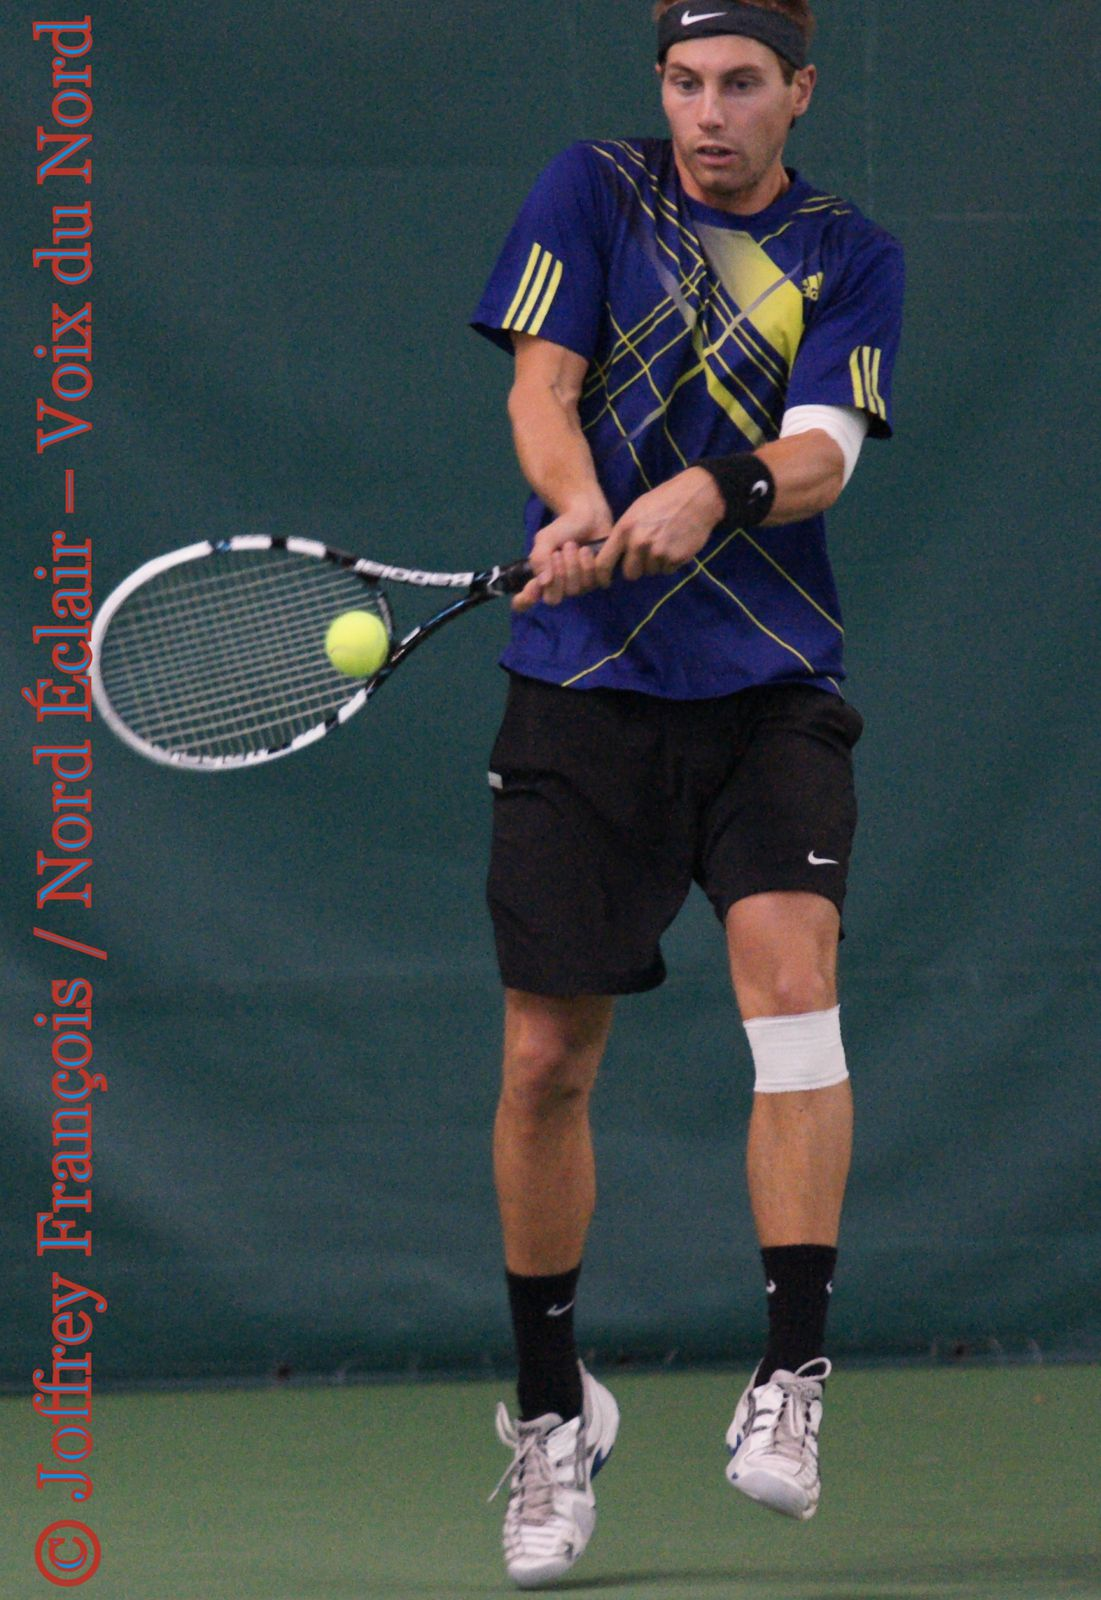 22.09.13 Volley (N2 TLM) + Tennis (Mouvaux)